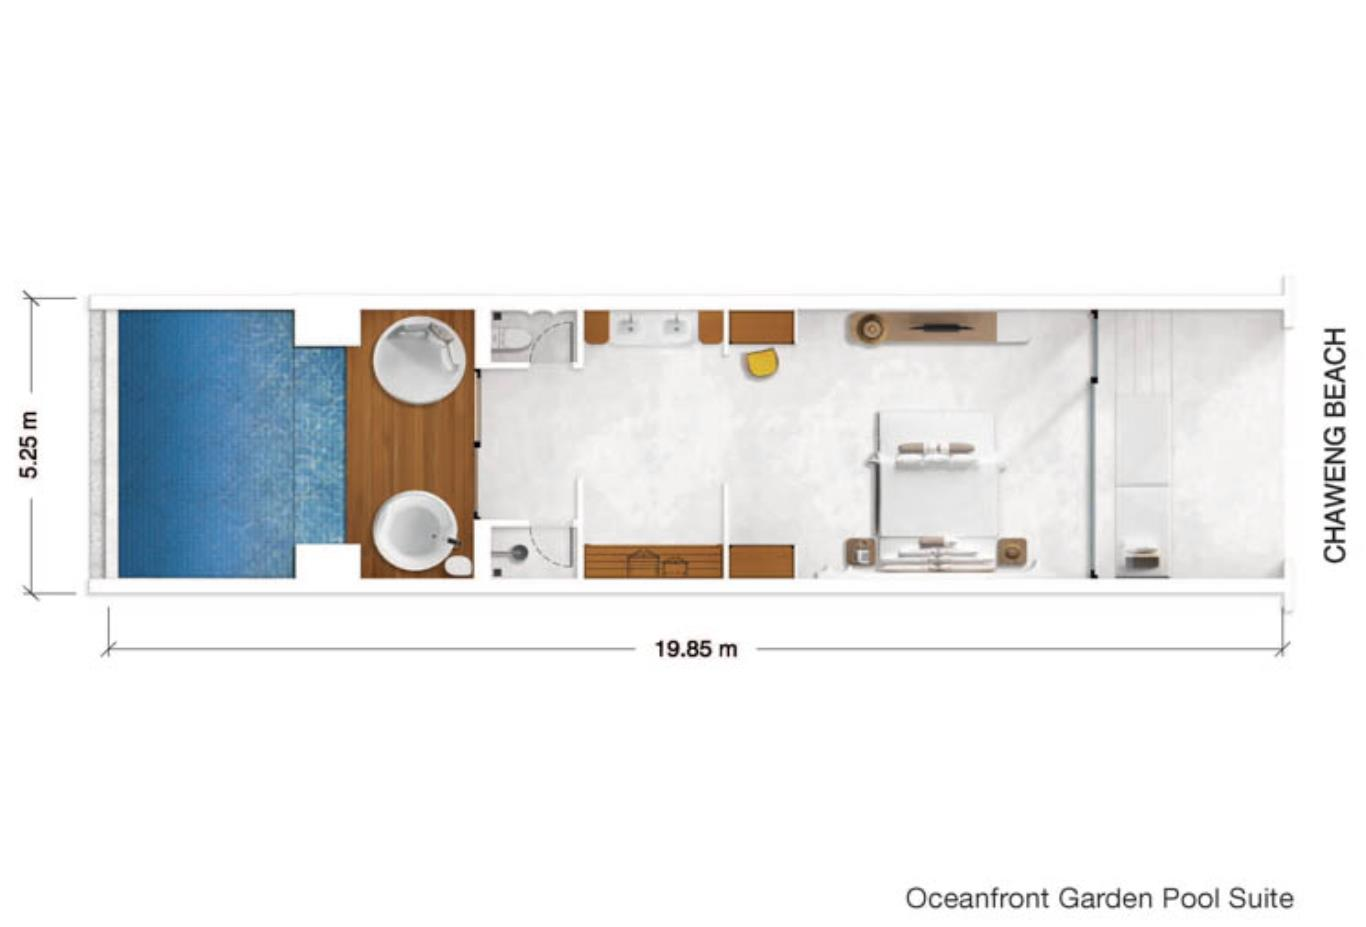 Oceanfront Garden Pool Suite floorplan